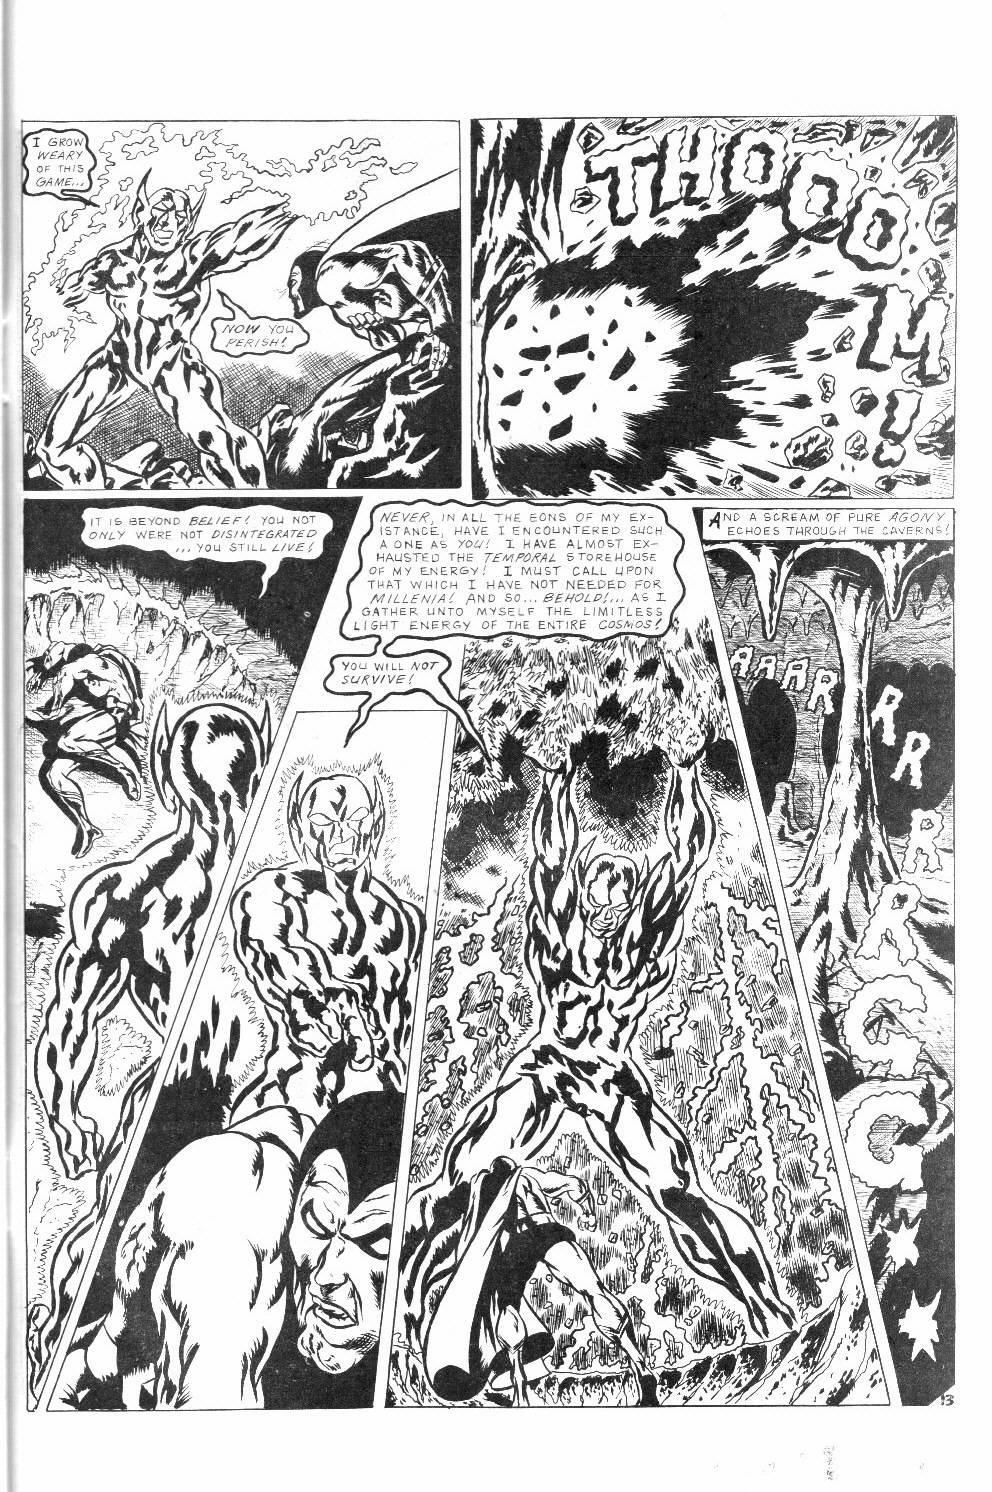 Read online Dr. Weird Special comic -  Issue # Full - 55